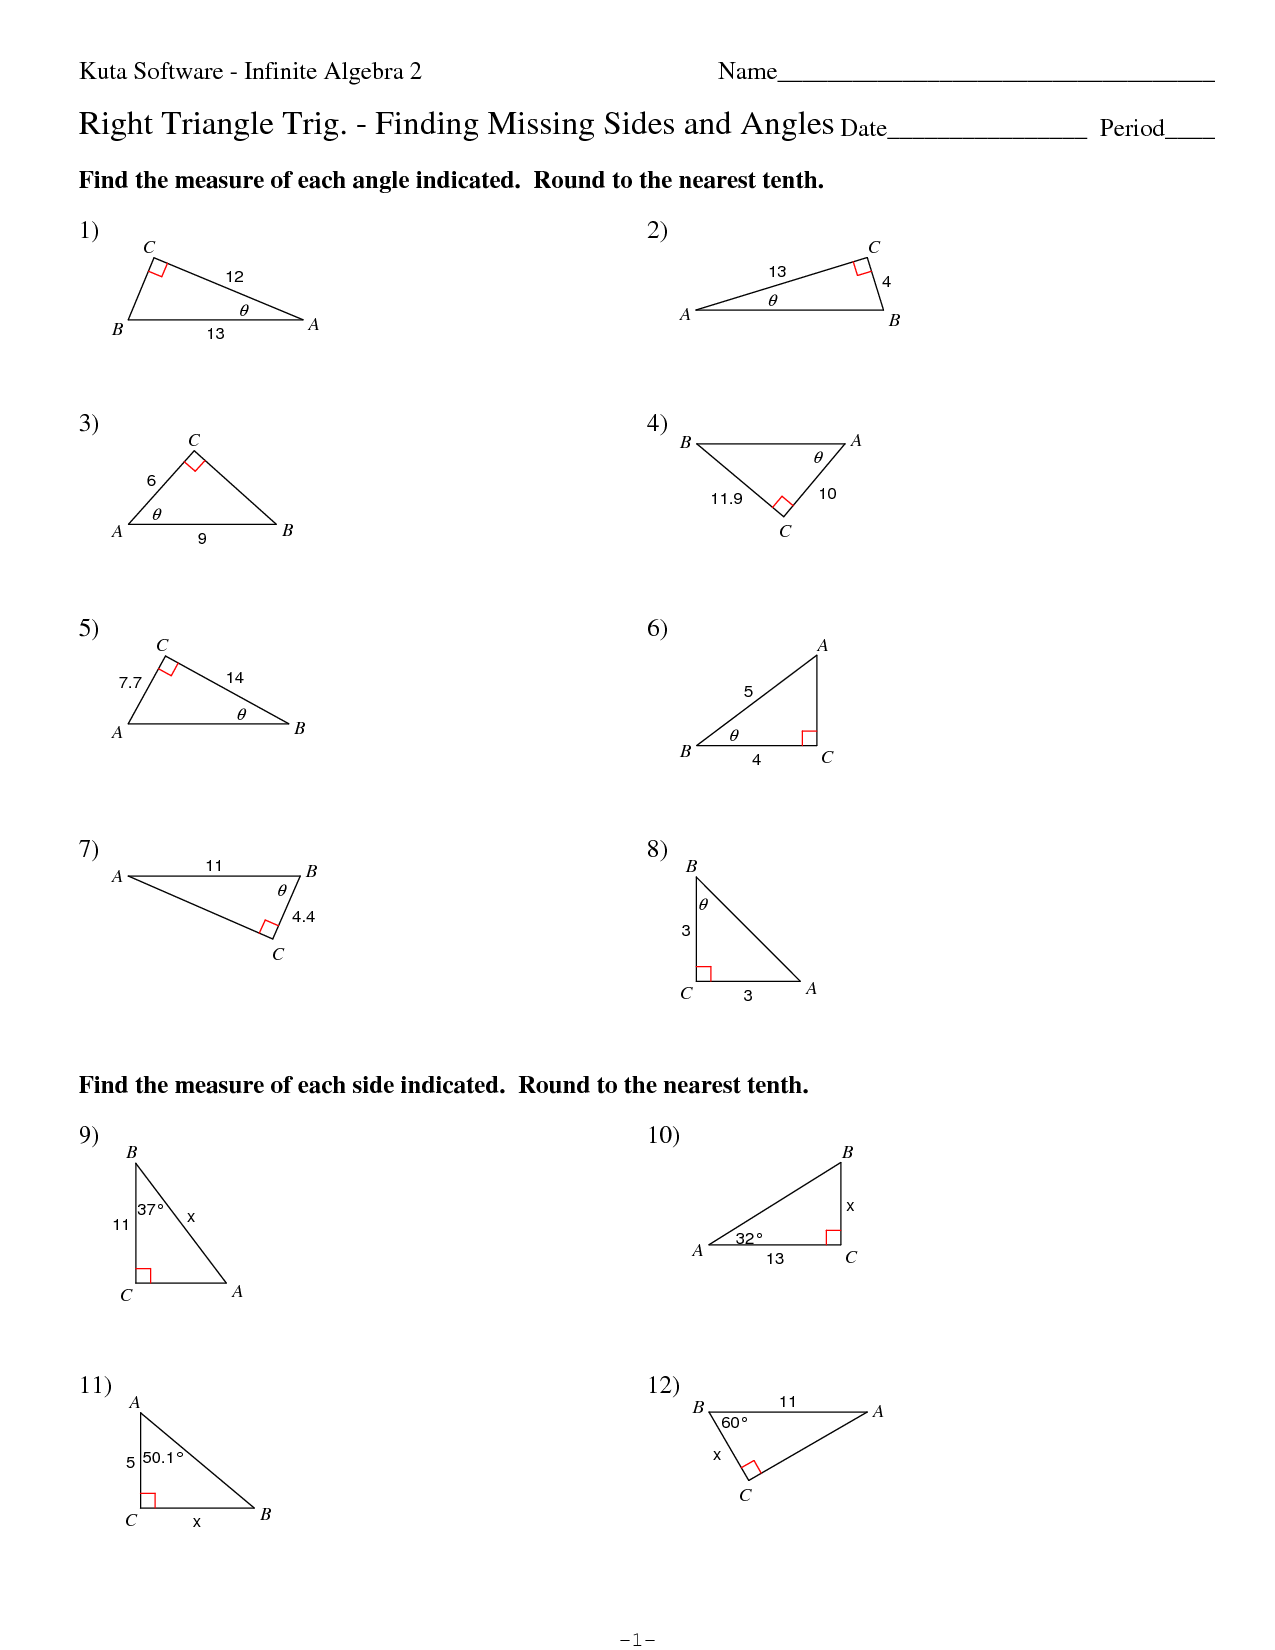 19 Best Images Of Right Triangle Trig Worksheets Right